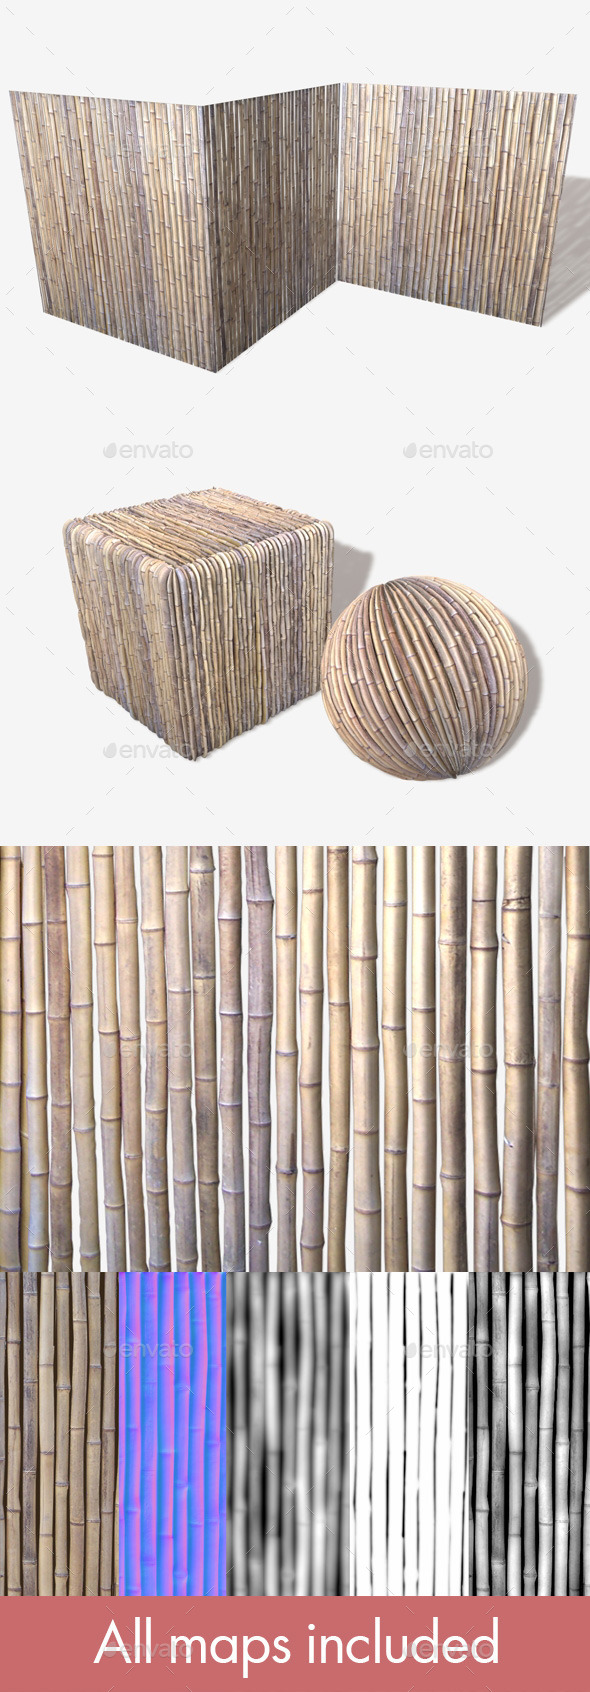 Bamboo Wall Seamless Texture - 3DOcean Item for Sale